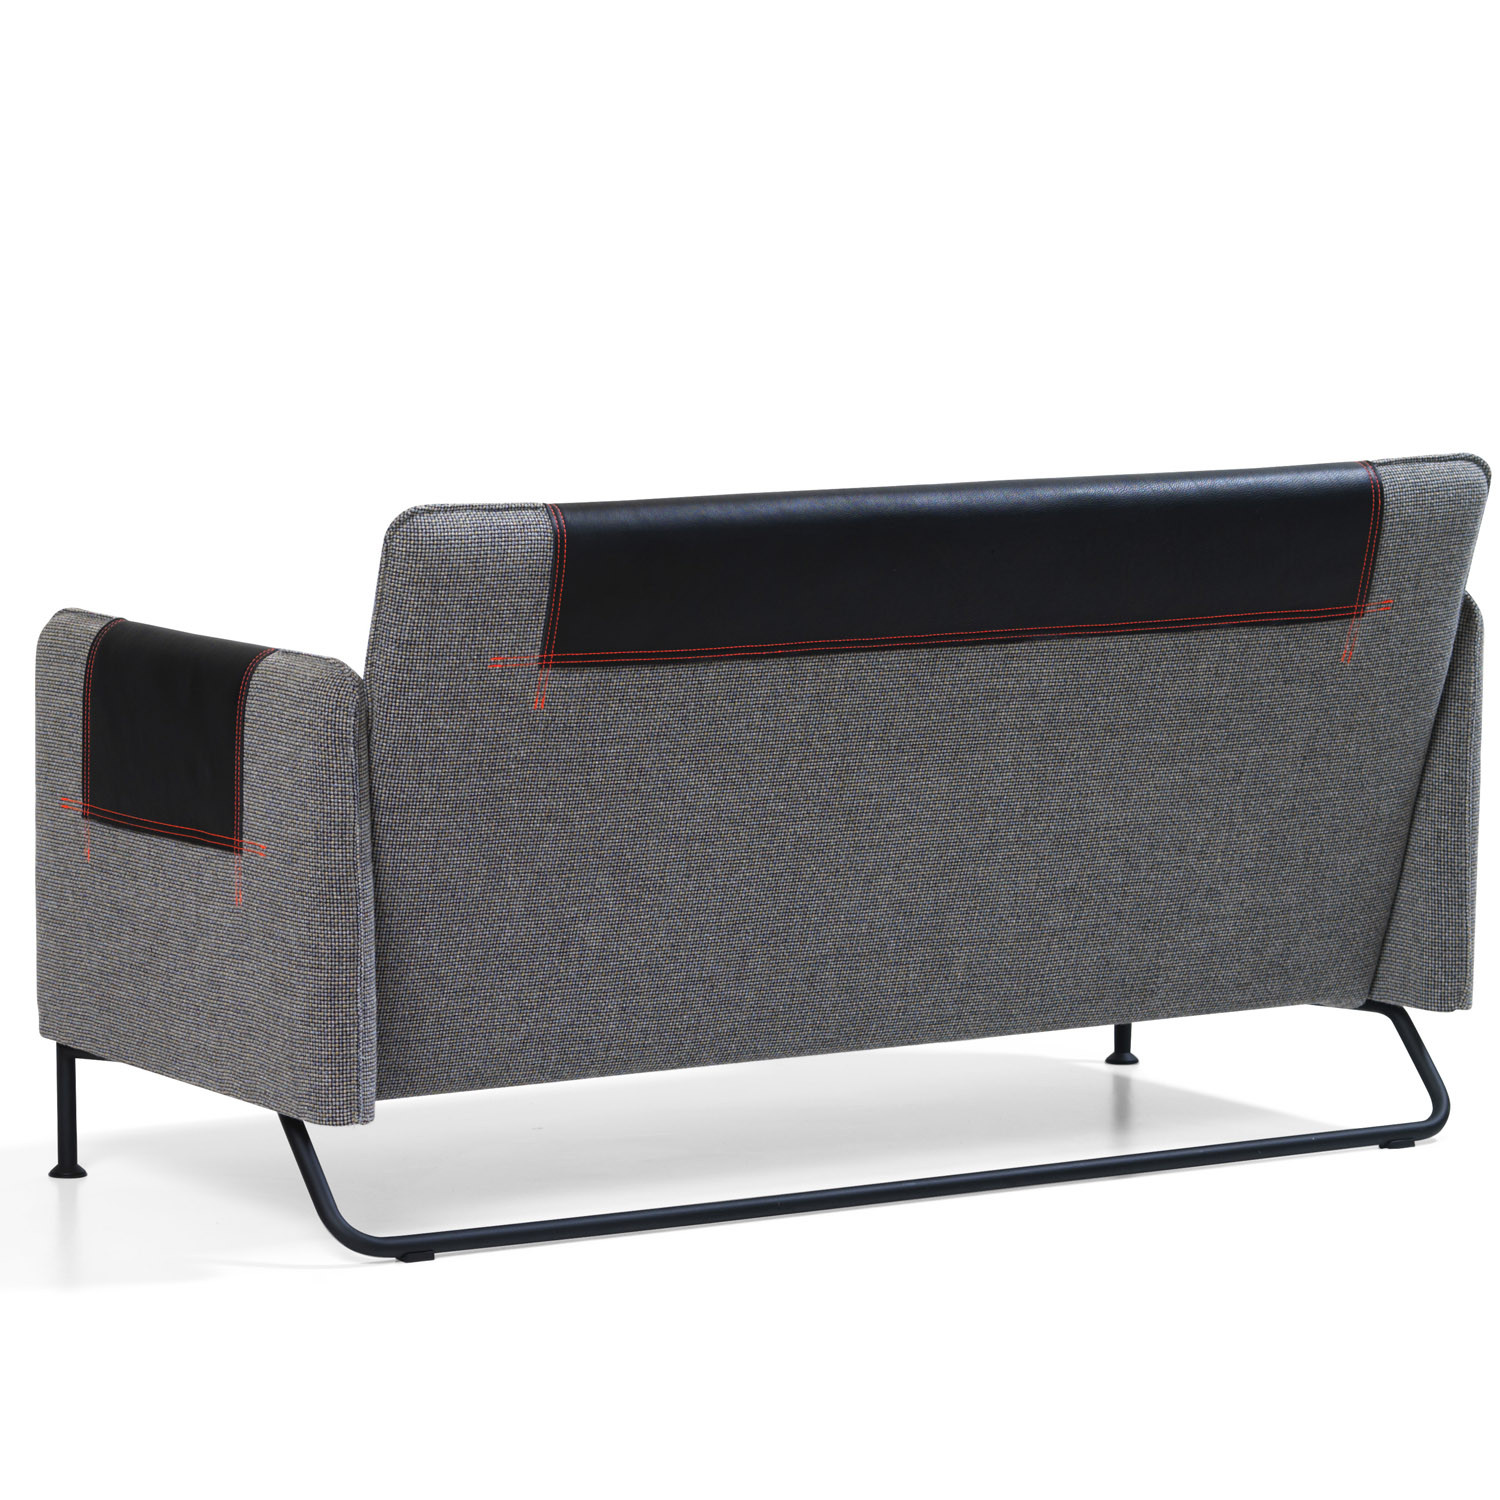 Taylor S37 Sofa by Bla Station